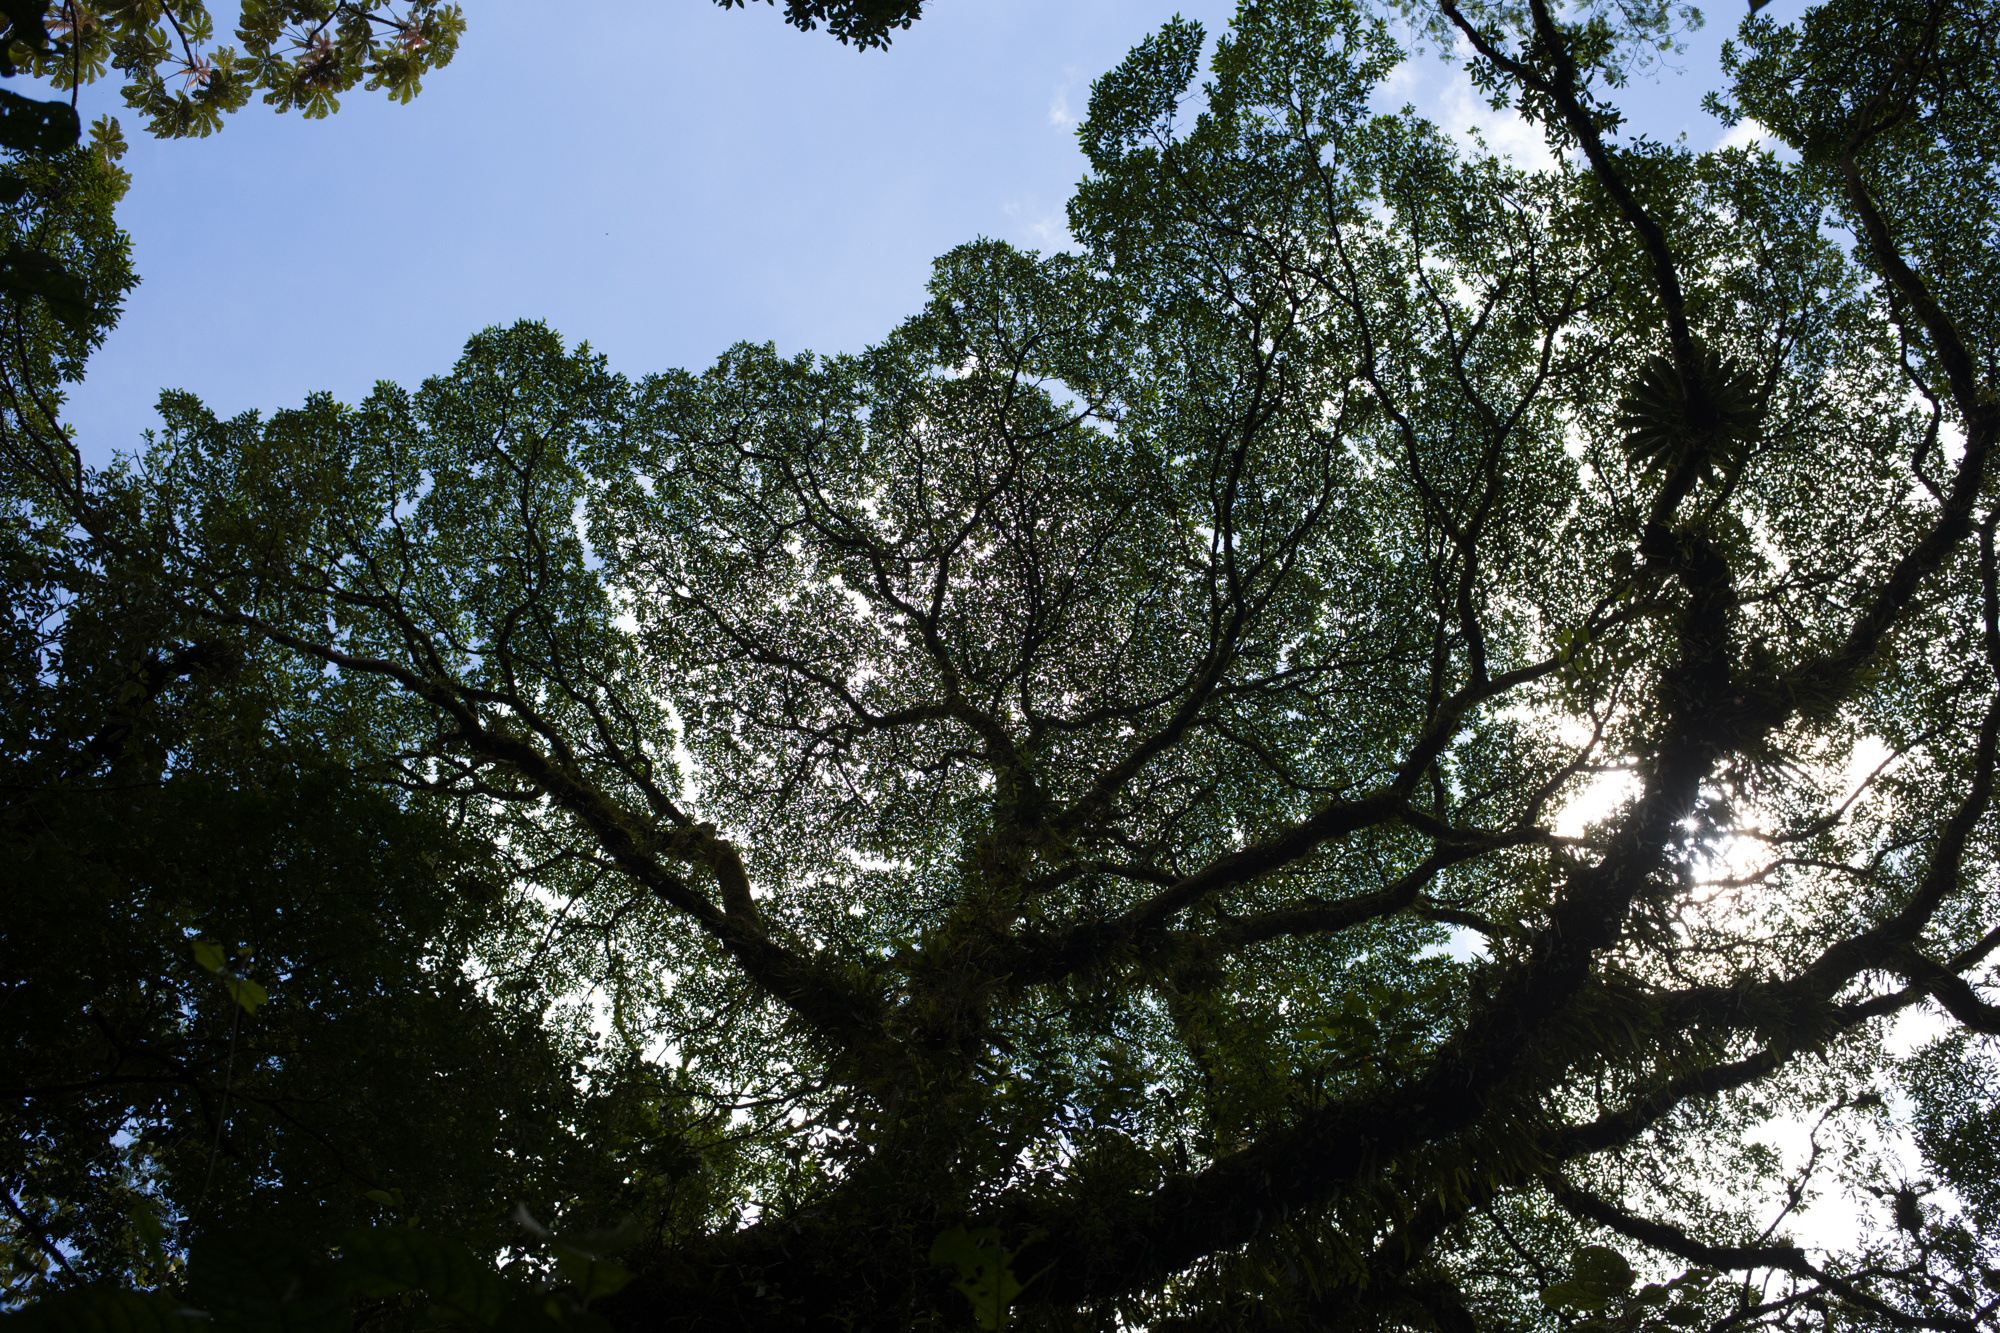 The fractal patterns of the rain forest canopy backlit by the tropical sun